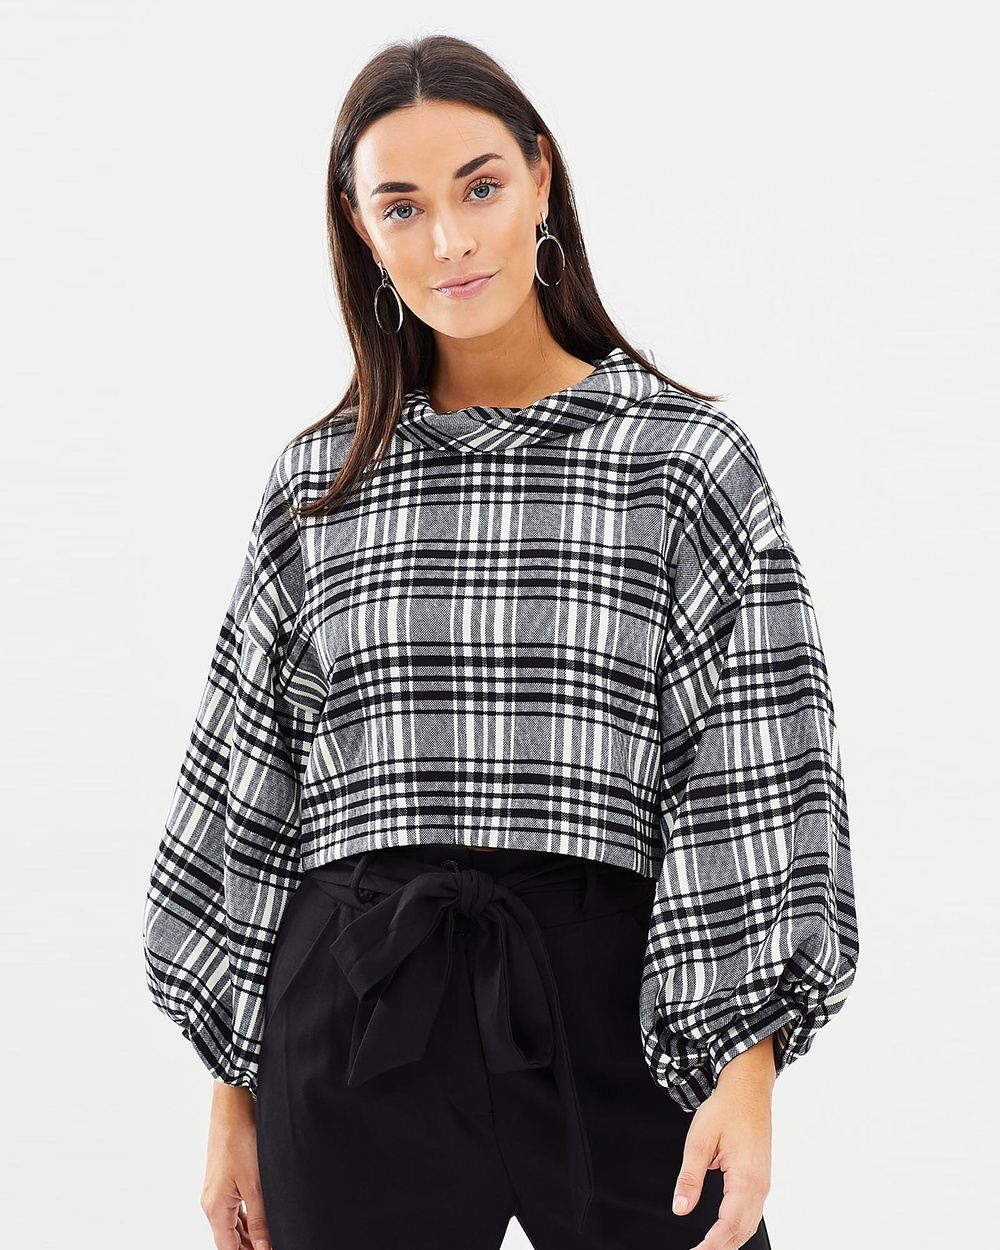 Honey and Beau Paityn Balloon Sleeve Top Cropped tops Check Paityn Balloon Sleeve Top